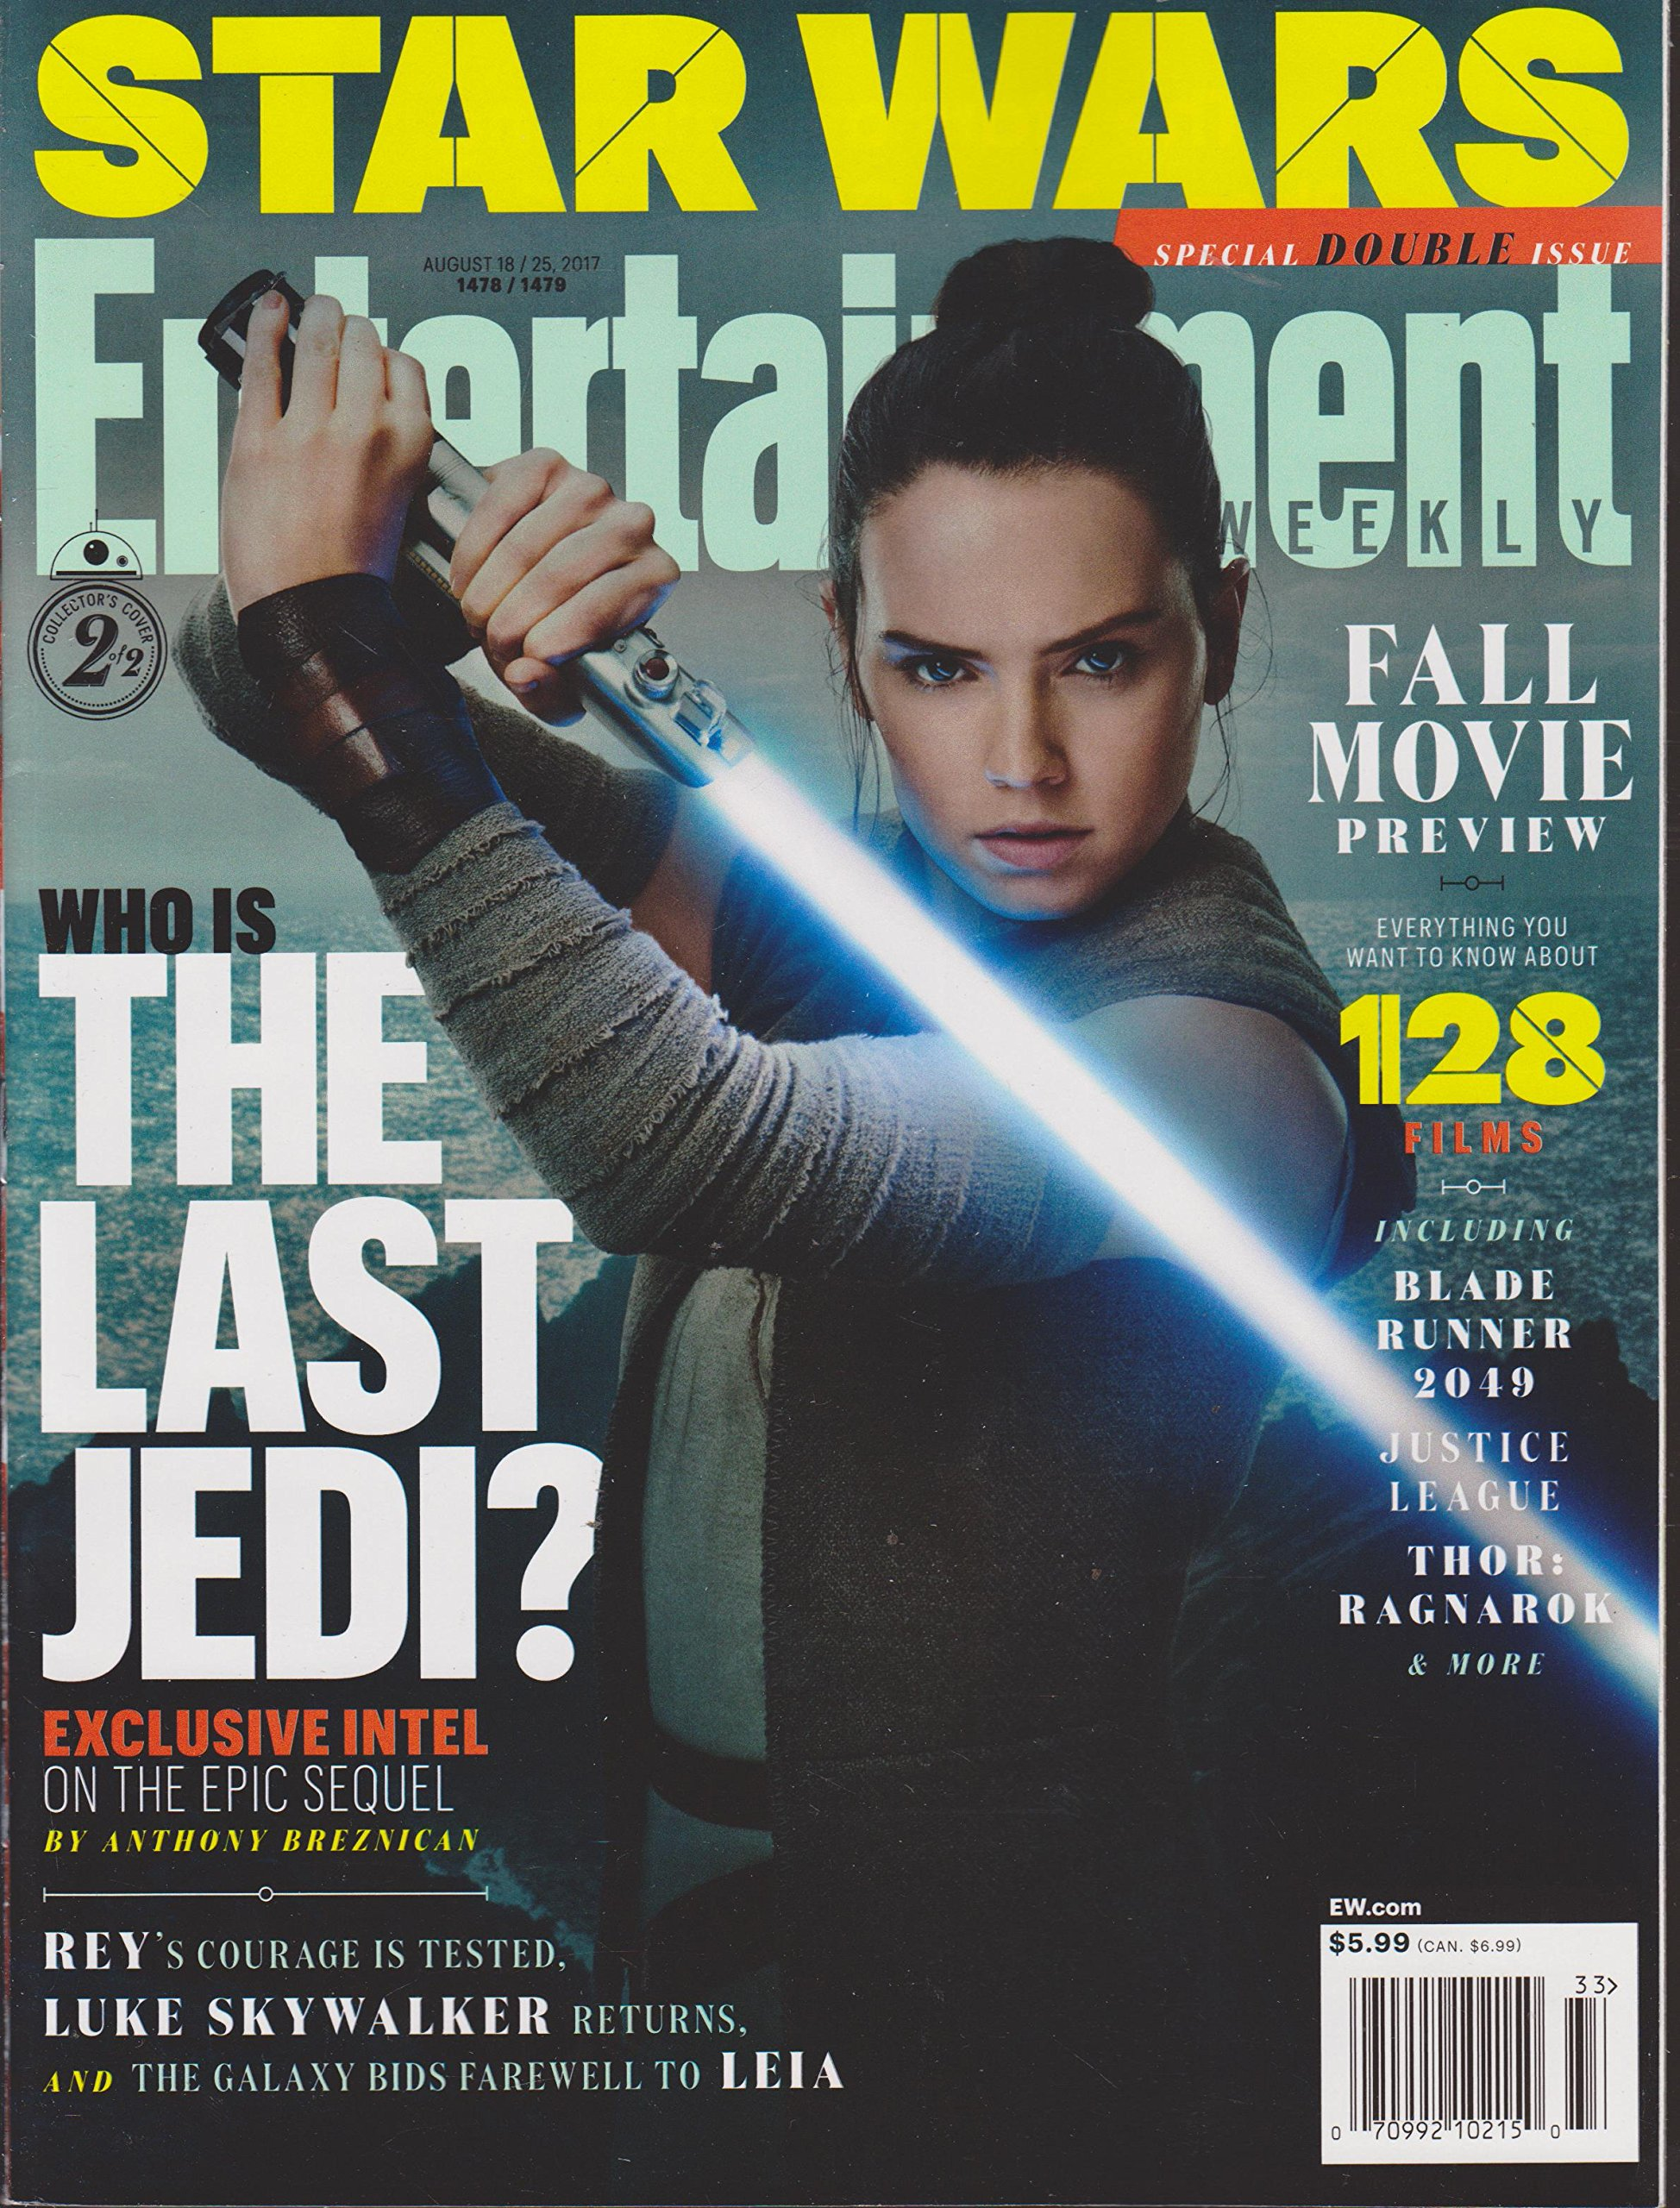 Entertainment Weekly August 18/25, 2017